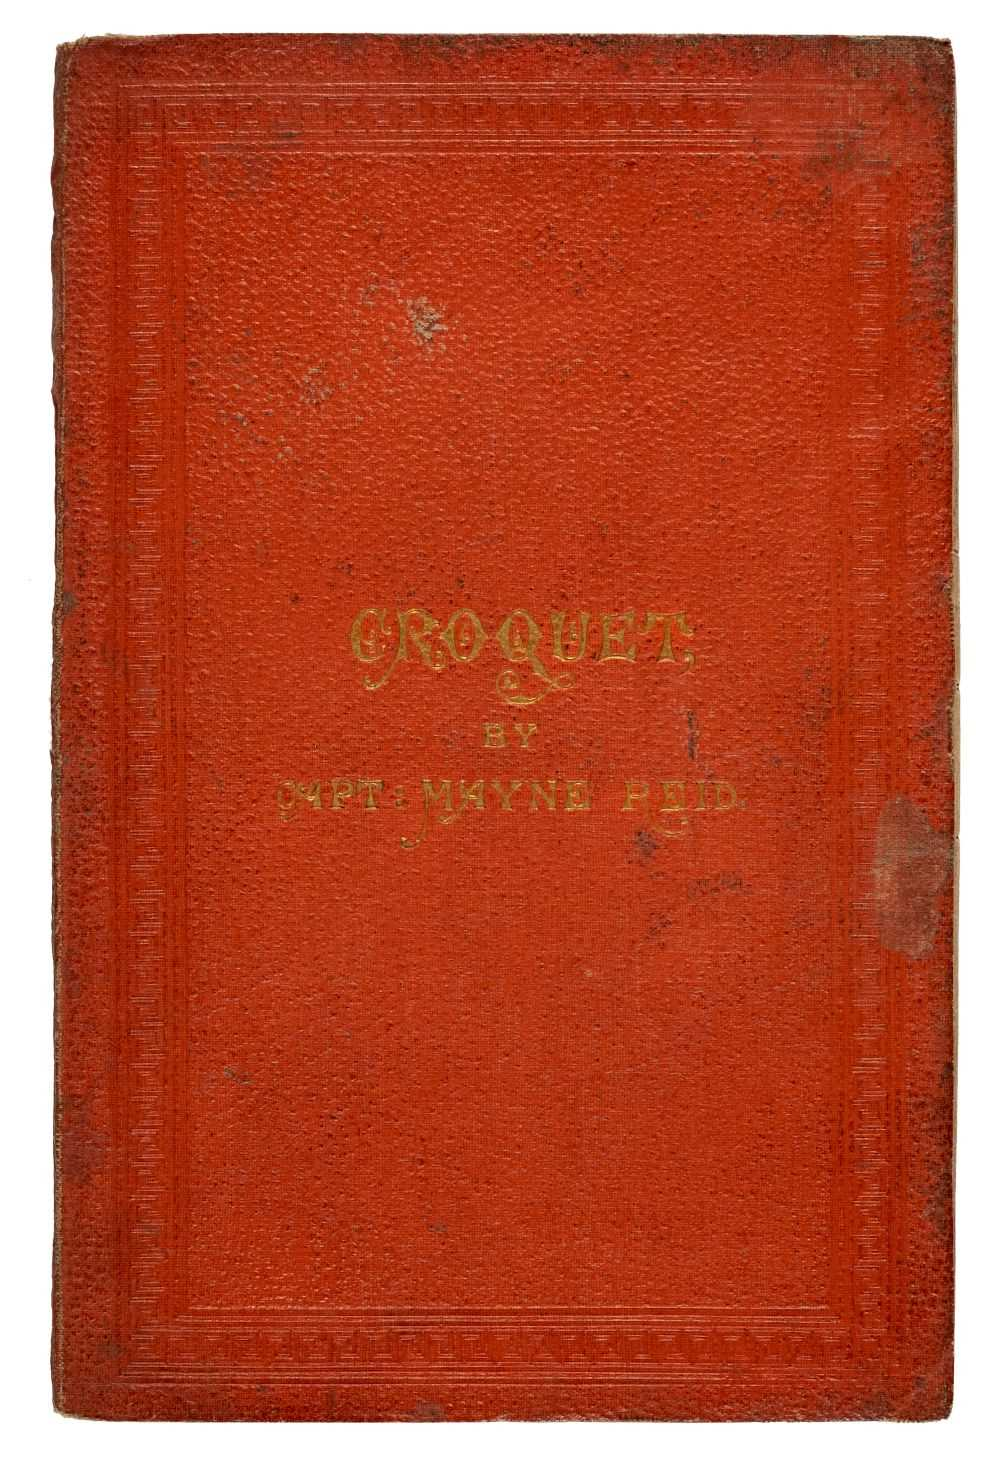 Lot 532-Reid (Captain Mayne). Croquet, 1st edition, 1863